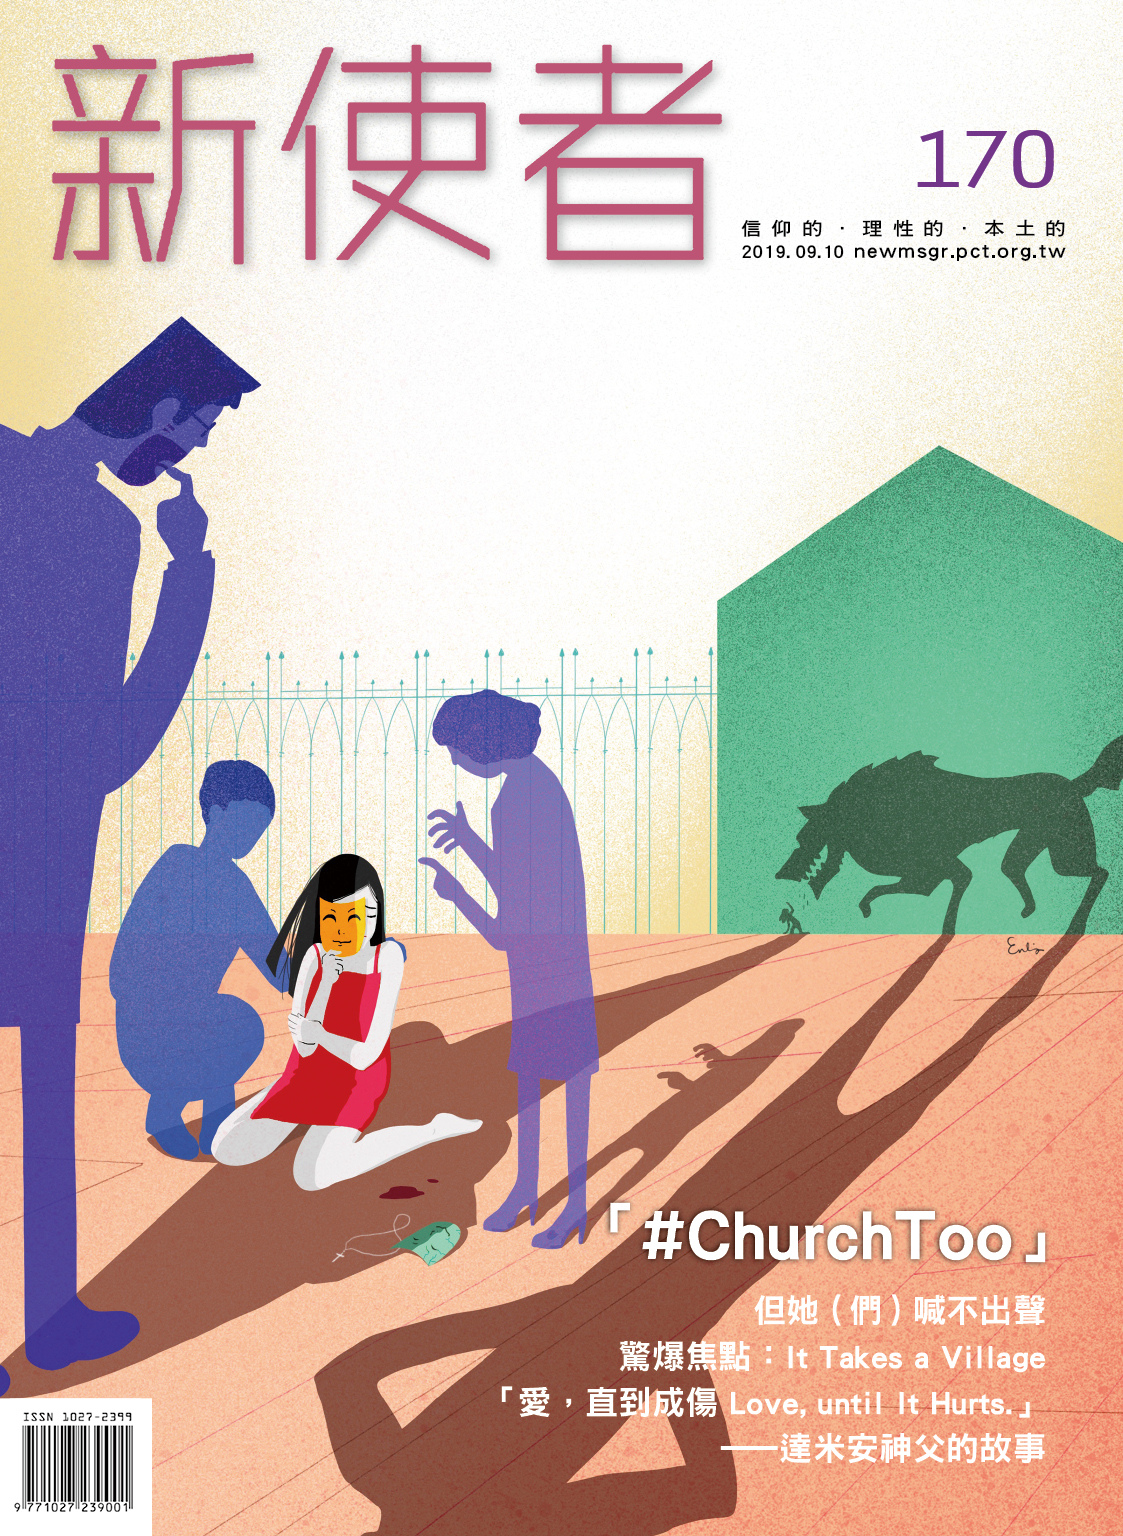 新使者雜誌 The New Messenger  170期  2019年  9月 #ChurchToo